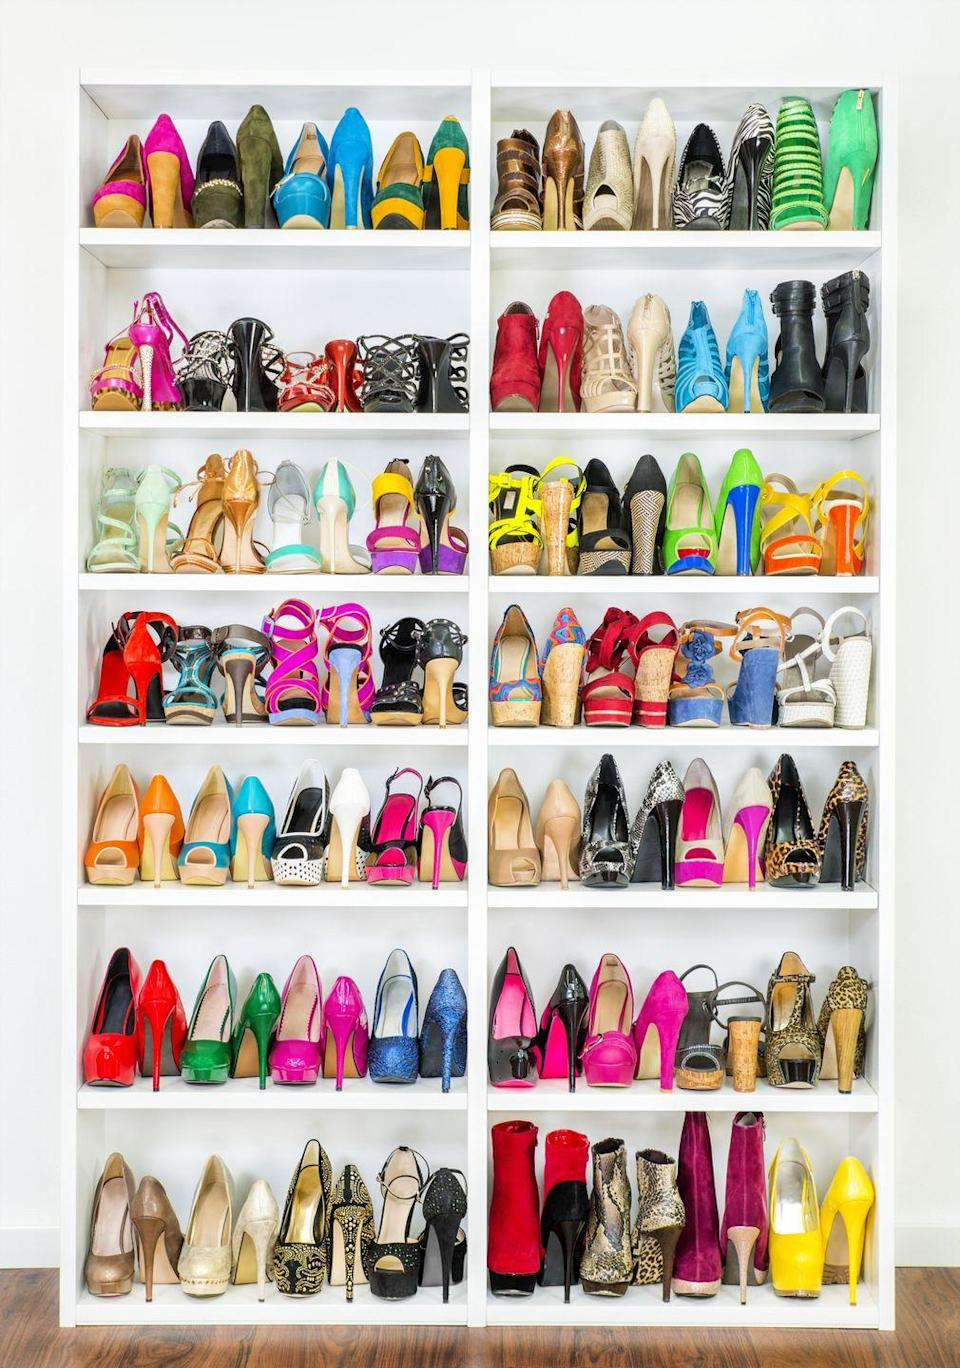 """<p>By organizing your shoes from heel to toe, you can maximize space (a.k.a. room for more shoes!), giving you a quick survey of color, toe style, and heel height to help speed up getting dressed.</p><p><strong>RELATED:</strong> <a href=""""https://www.goodhousekeeping.com/home/cleaning/tips/g1343/shoe-organizing-ideas/"""" rel=""""nofollow noopener"""" target=""""_blank"""" data-ylk=""""slk:Smart Ways to Keep Shoes Tidy"""" class=""""link rapid-noclick-resp"""">Smart Ways to Keep Shoes Tidy </a></p>"""